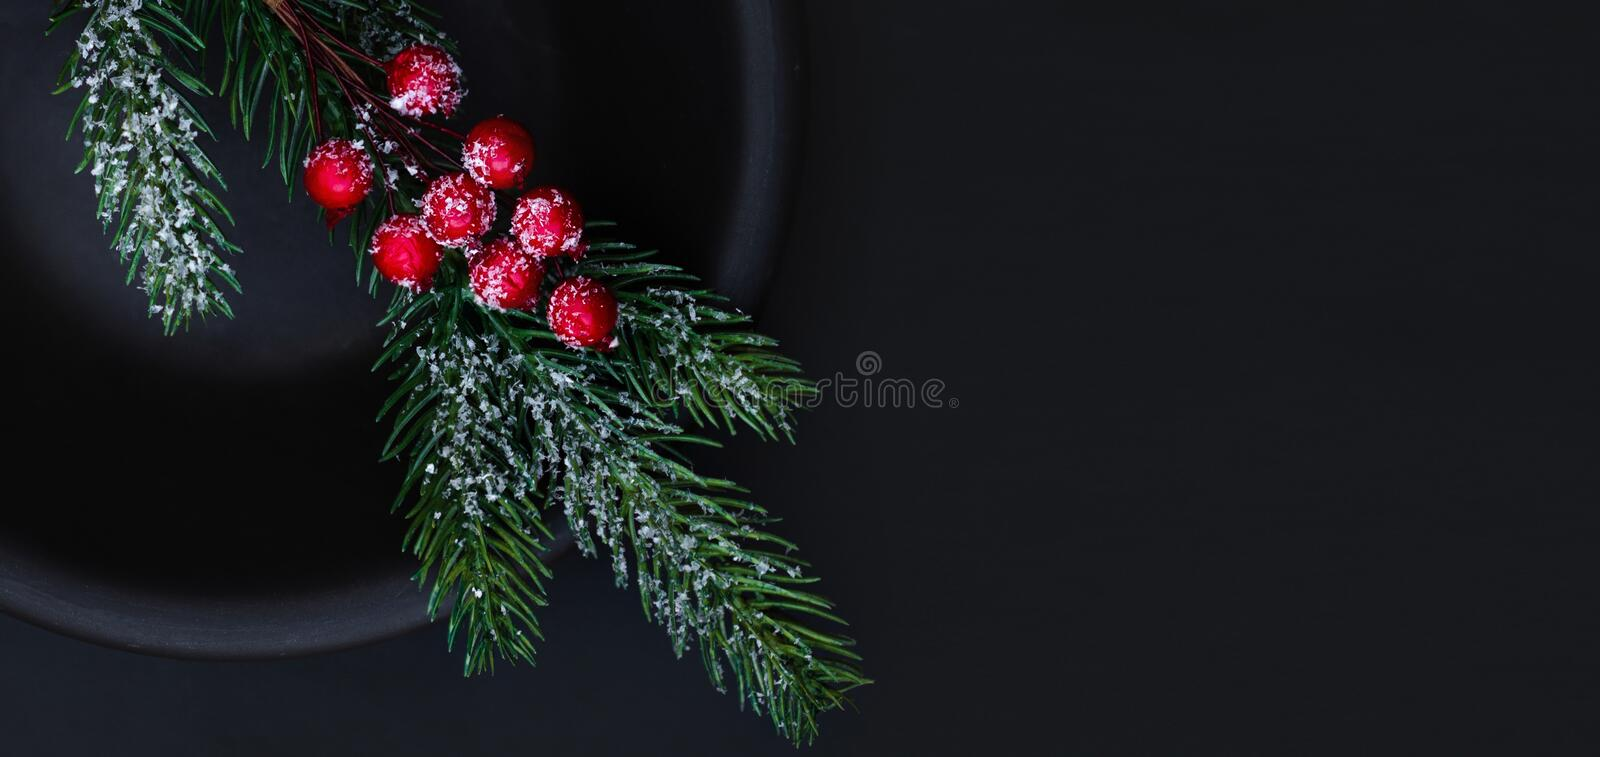 Christmas composition with fir tree and red berries  on dark  background. Xmas tree, pine, winter festive Card. Top view. royalty free stock photography